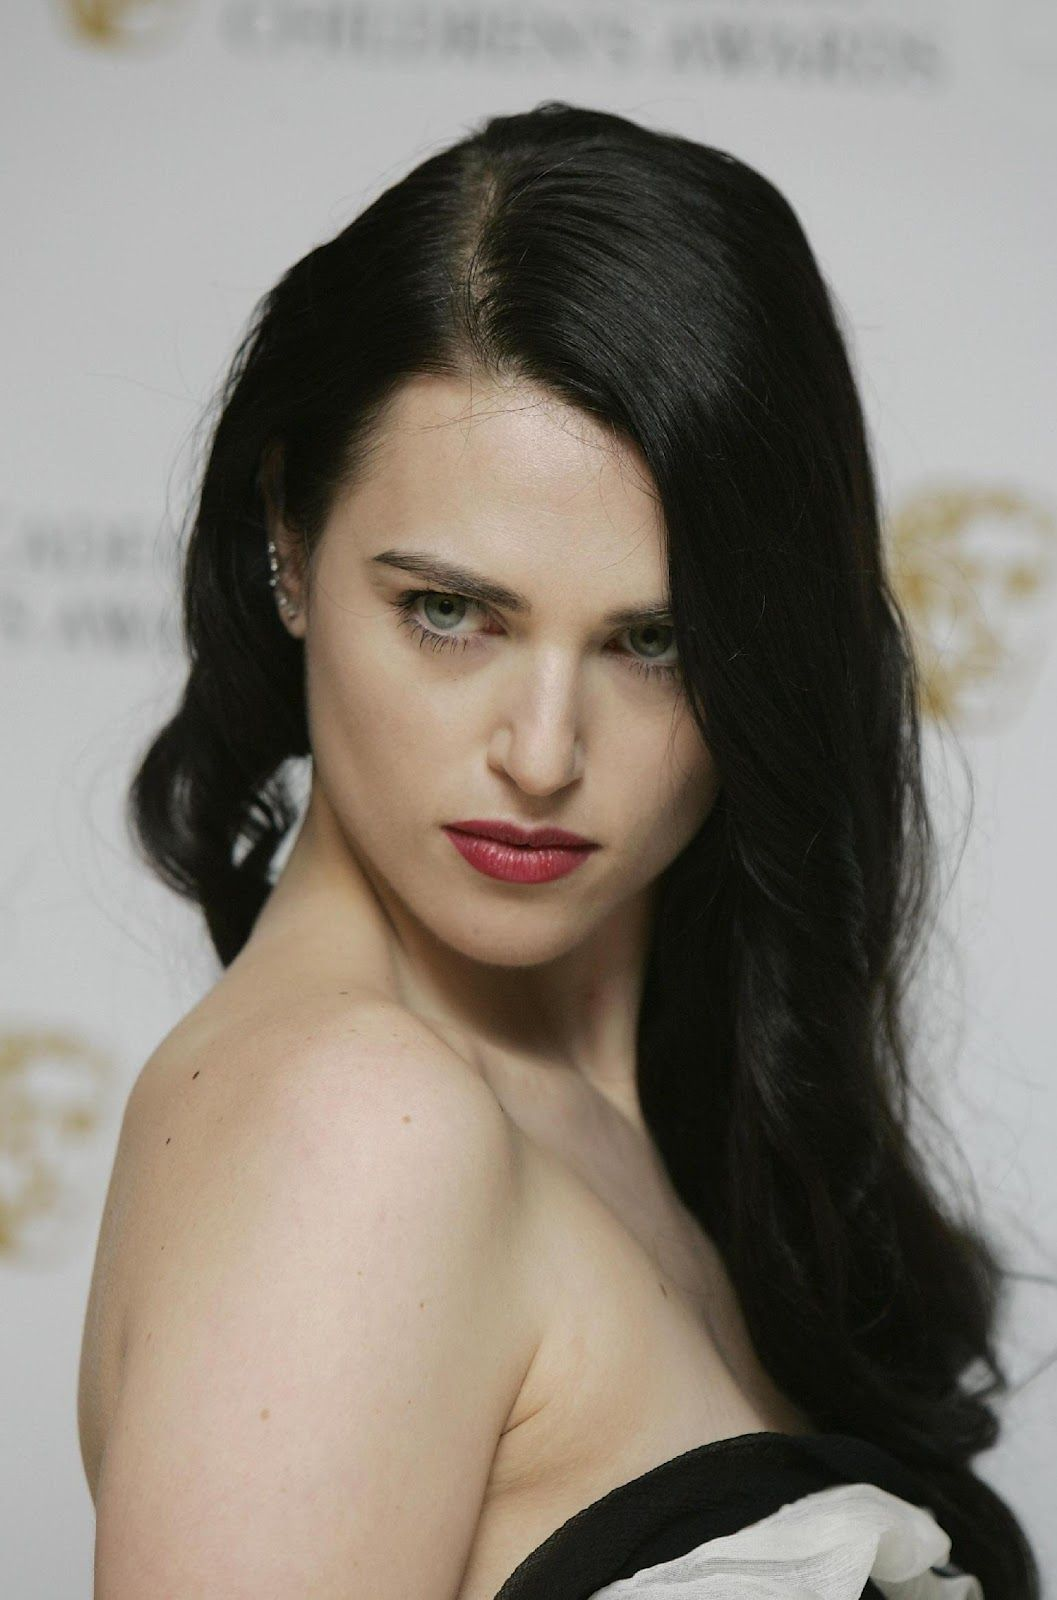 Pin By Morgana On Katie Mcgrath Lena Luthor Katie Mcgrath Hot Katie Mcgrath Jonathan Rhys Meyers